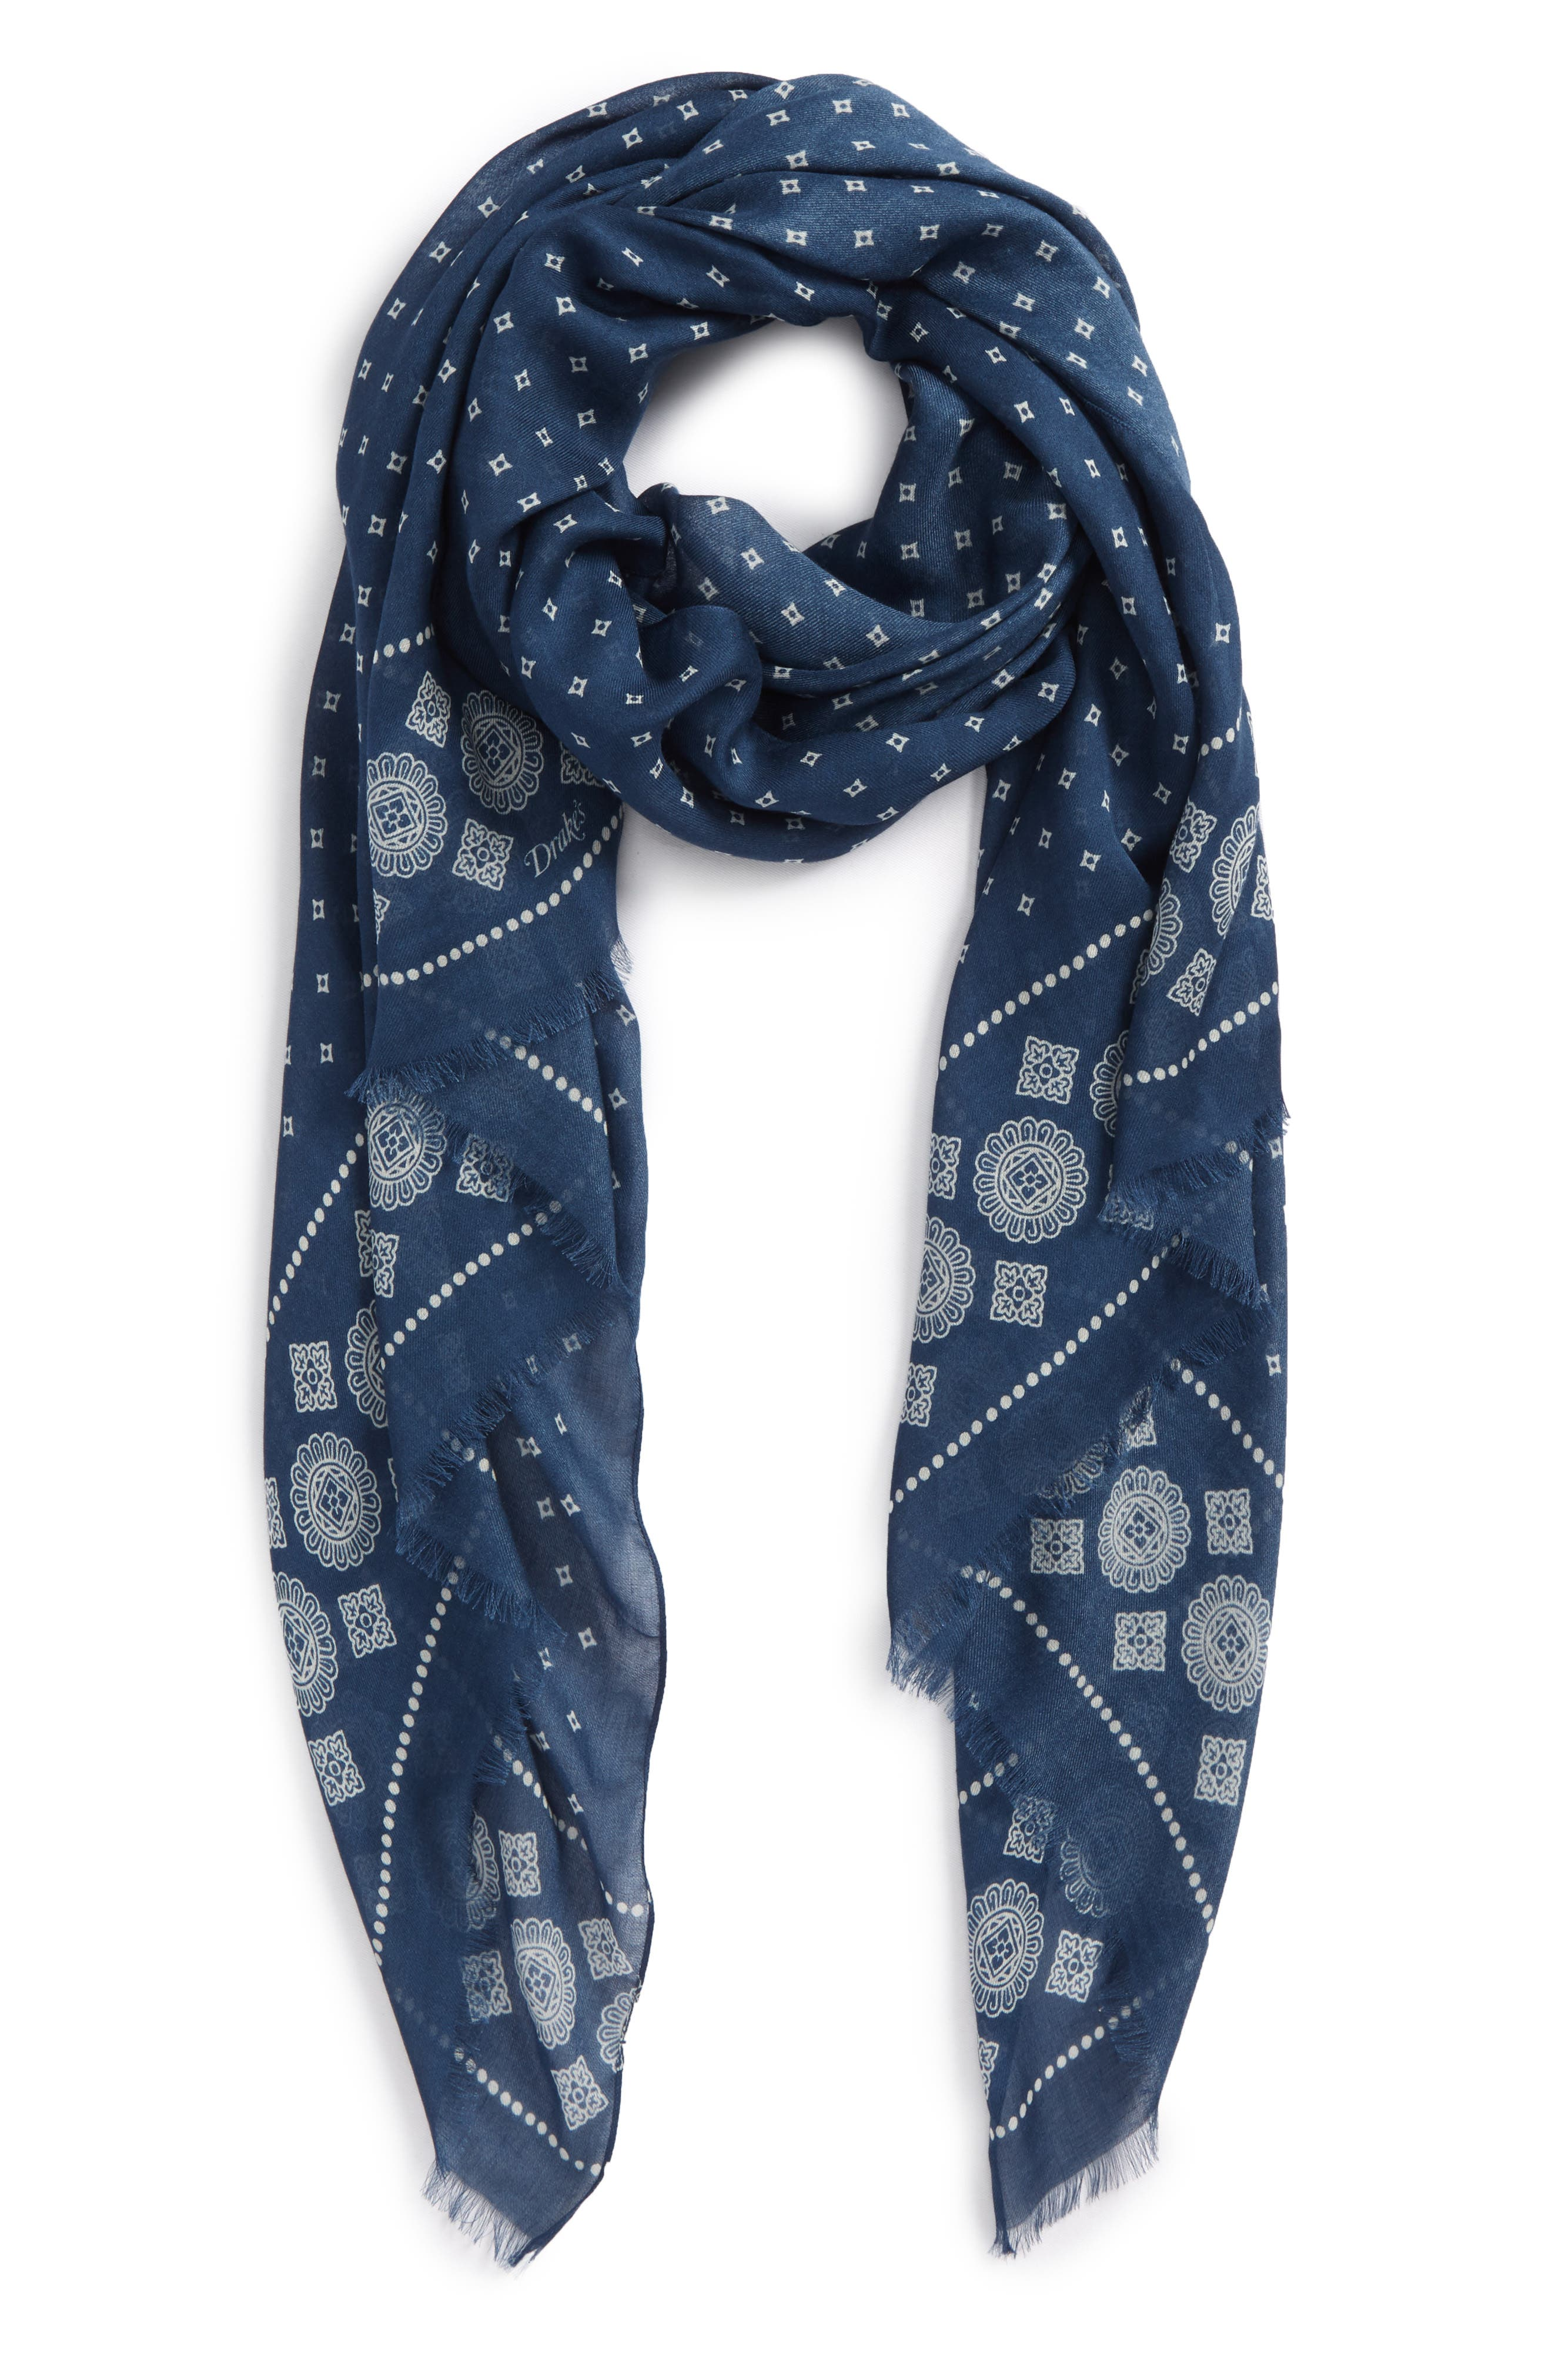 Drakes Block Print Scarf,                             Main thumbnail 1, color,                             400